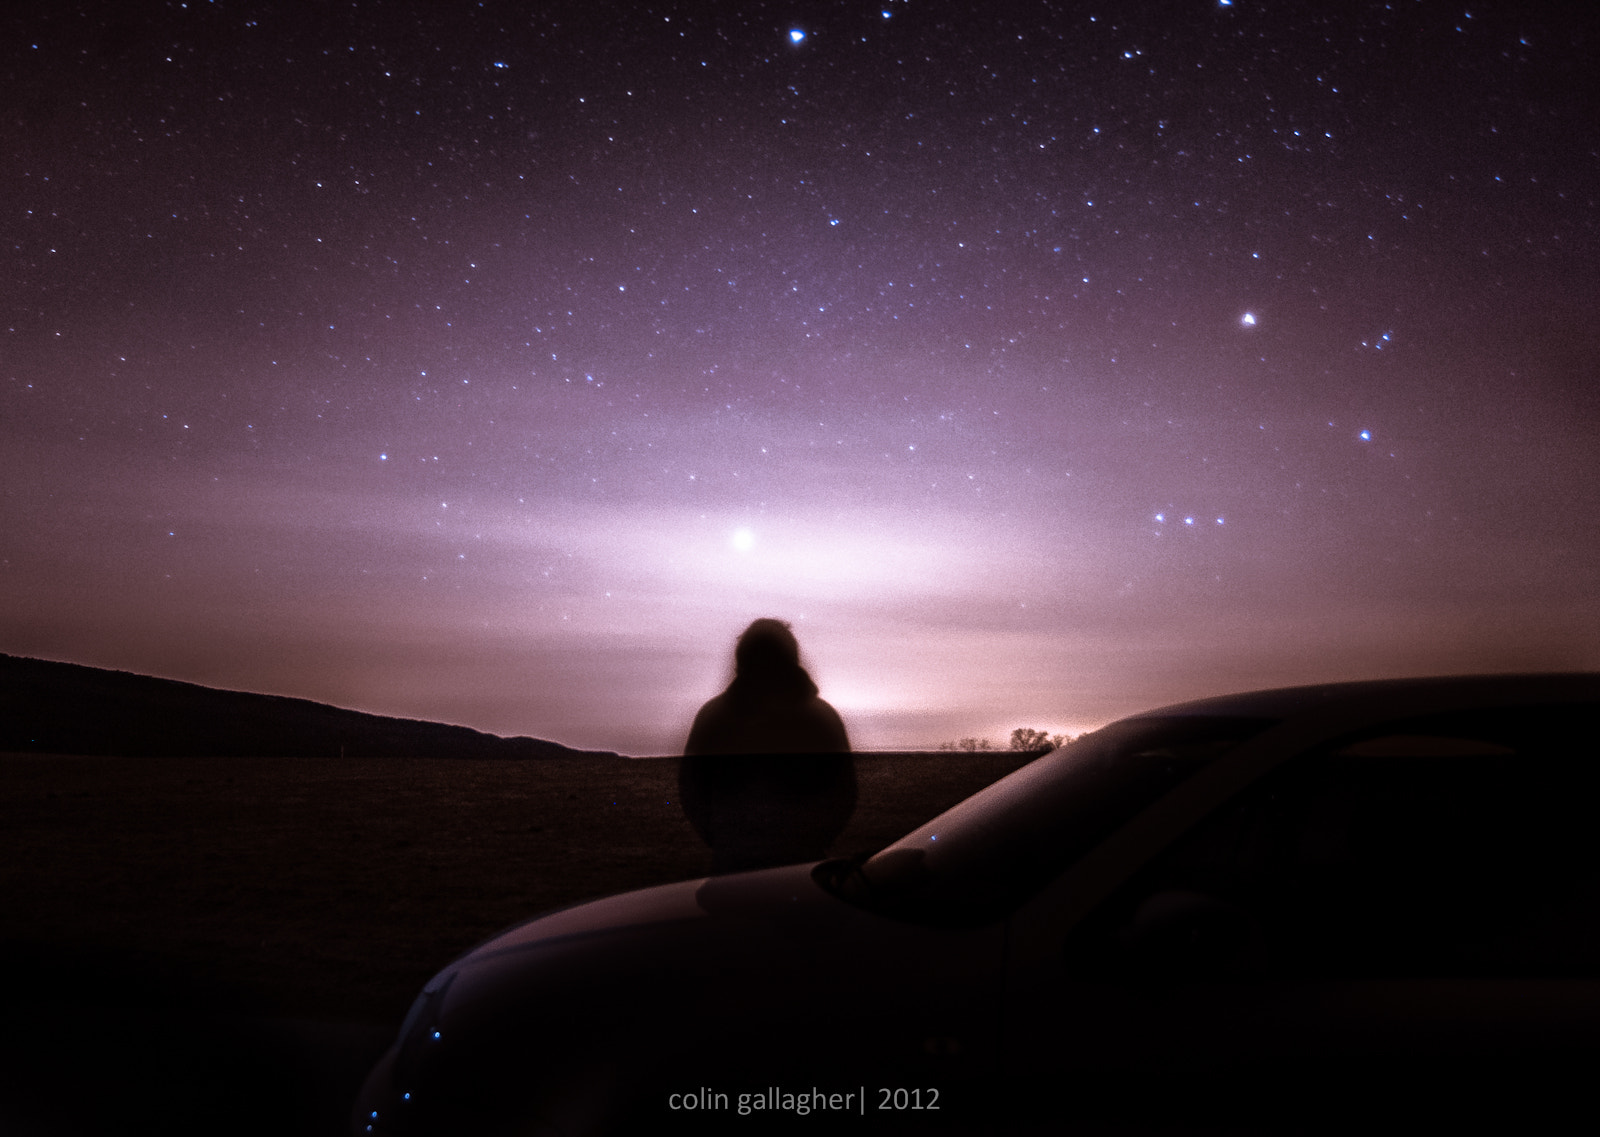 Photograph 'shh, it's just the stars.' #2 by Colin Gallagher on 500px